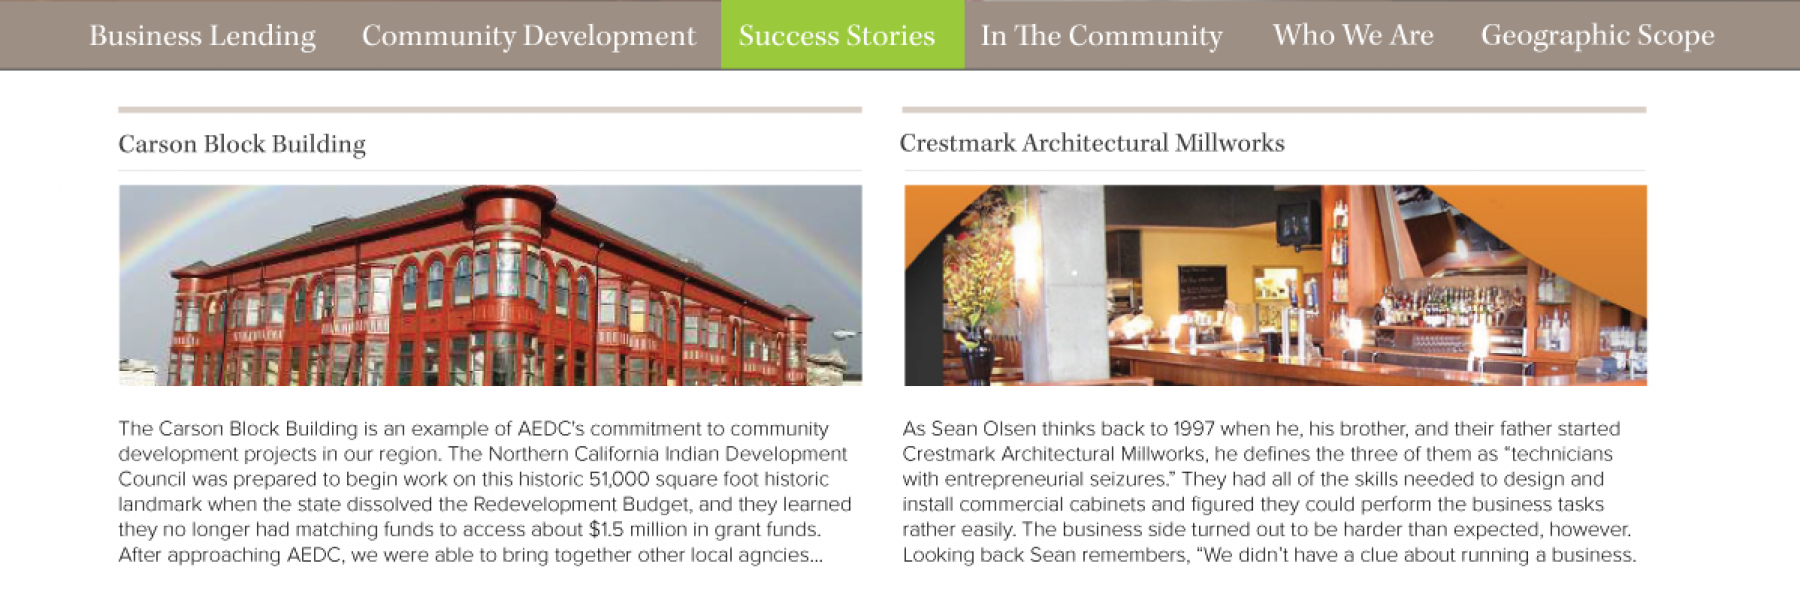 Draft #3 of AEDC's website homepage which features the dynamic display